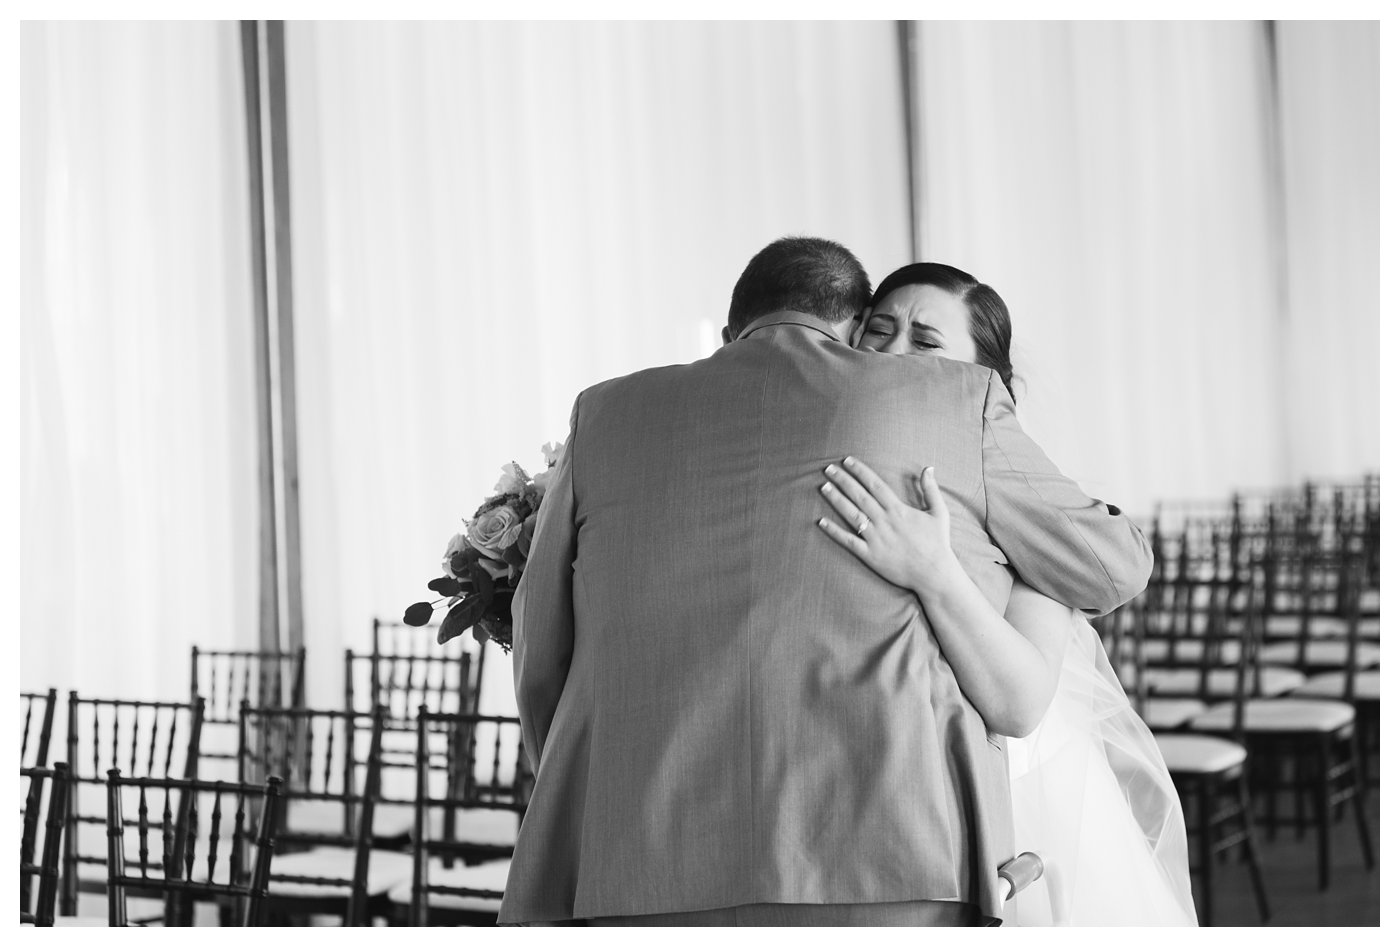 Melrose Knitting Mill Wedding Photography by Amanda and Grady